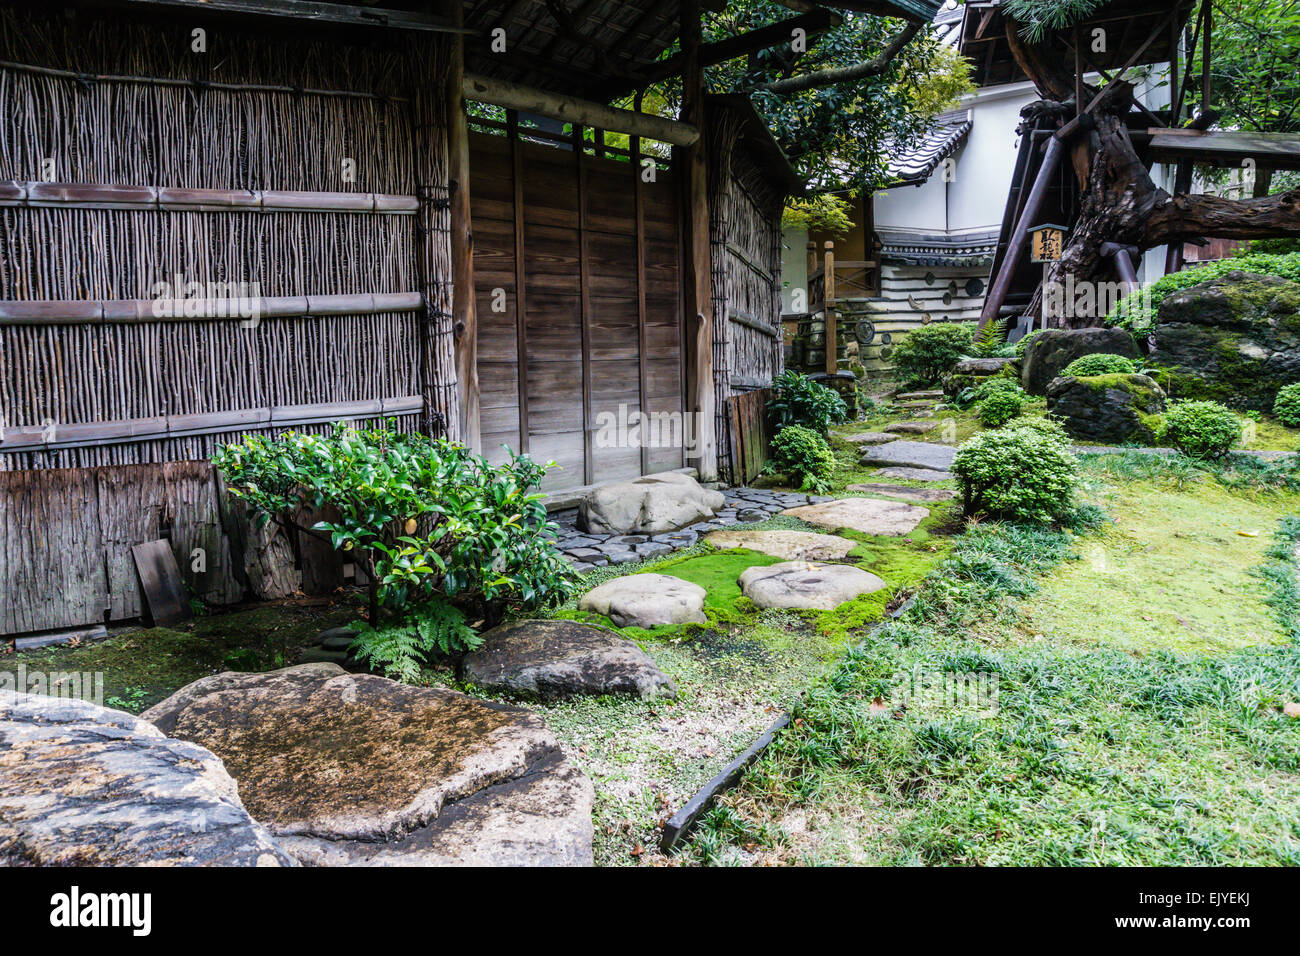 Charming Stock Photo   View Of A Traditional Japanese Garden With Old Bamboo Fence  And Stone Path In Kyoto, Japan